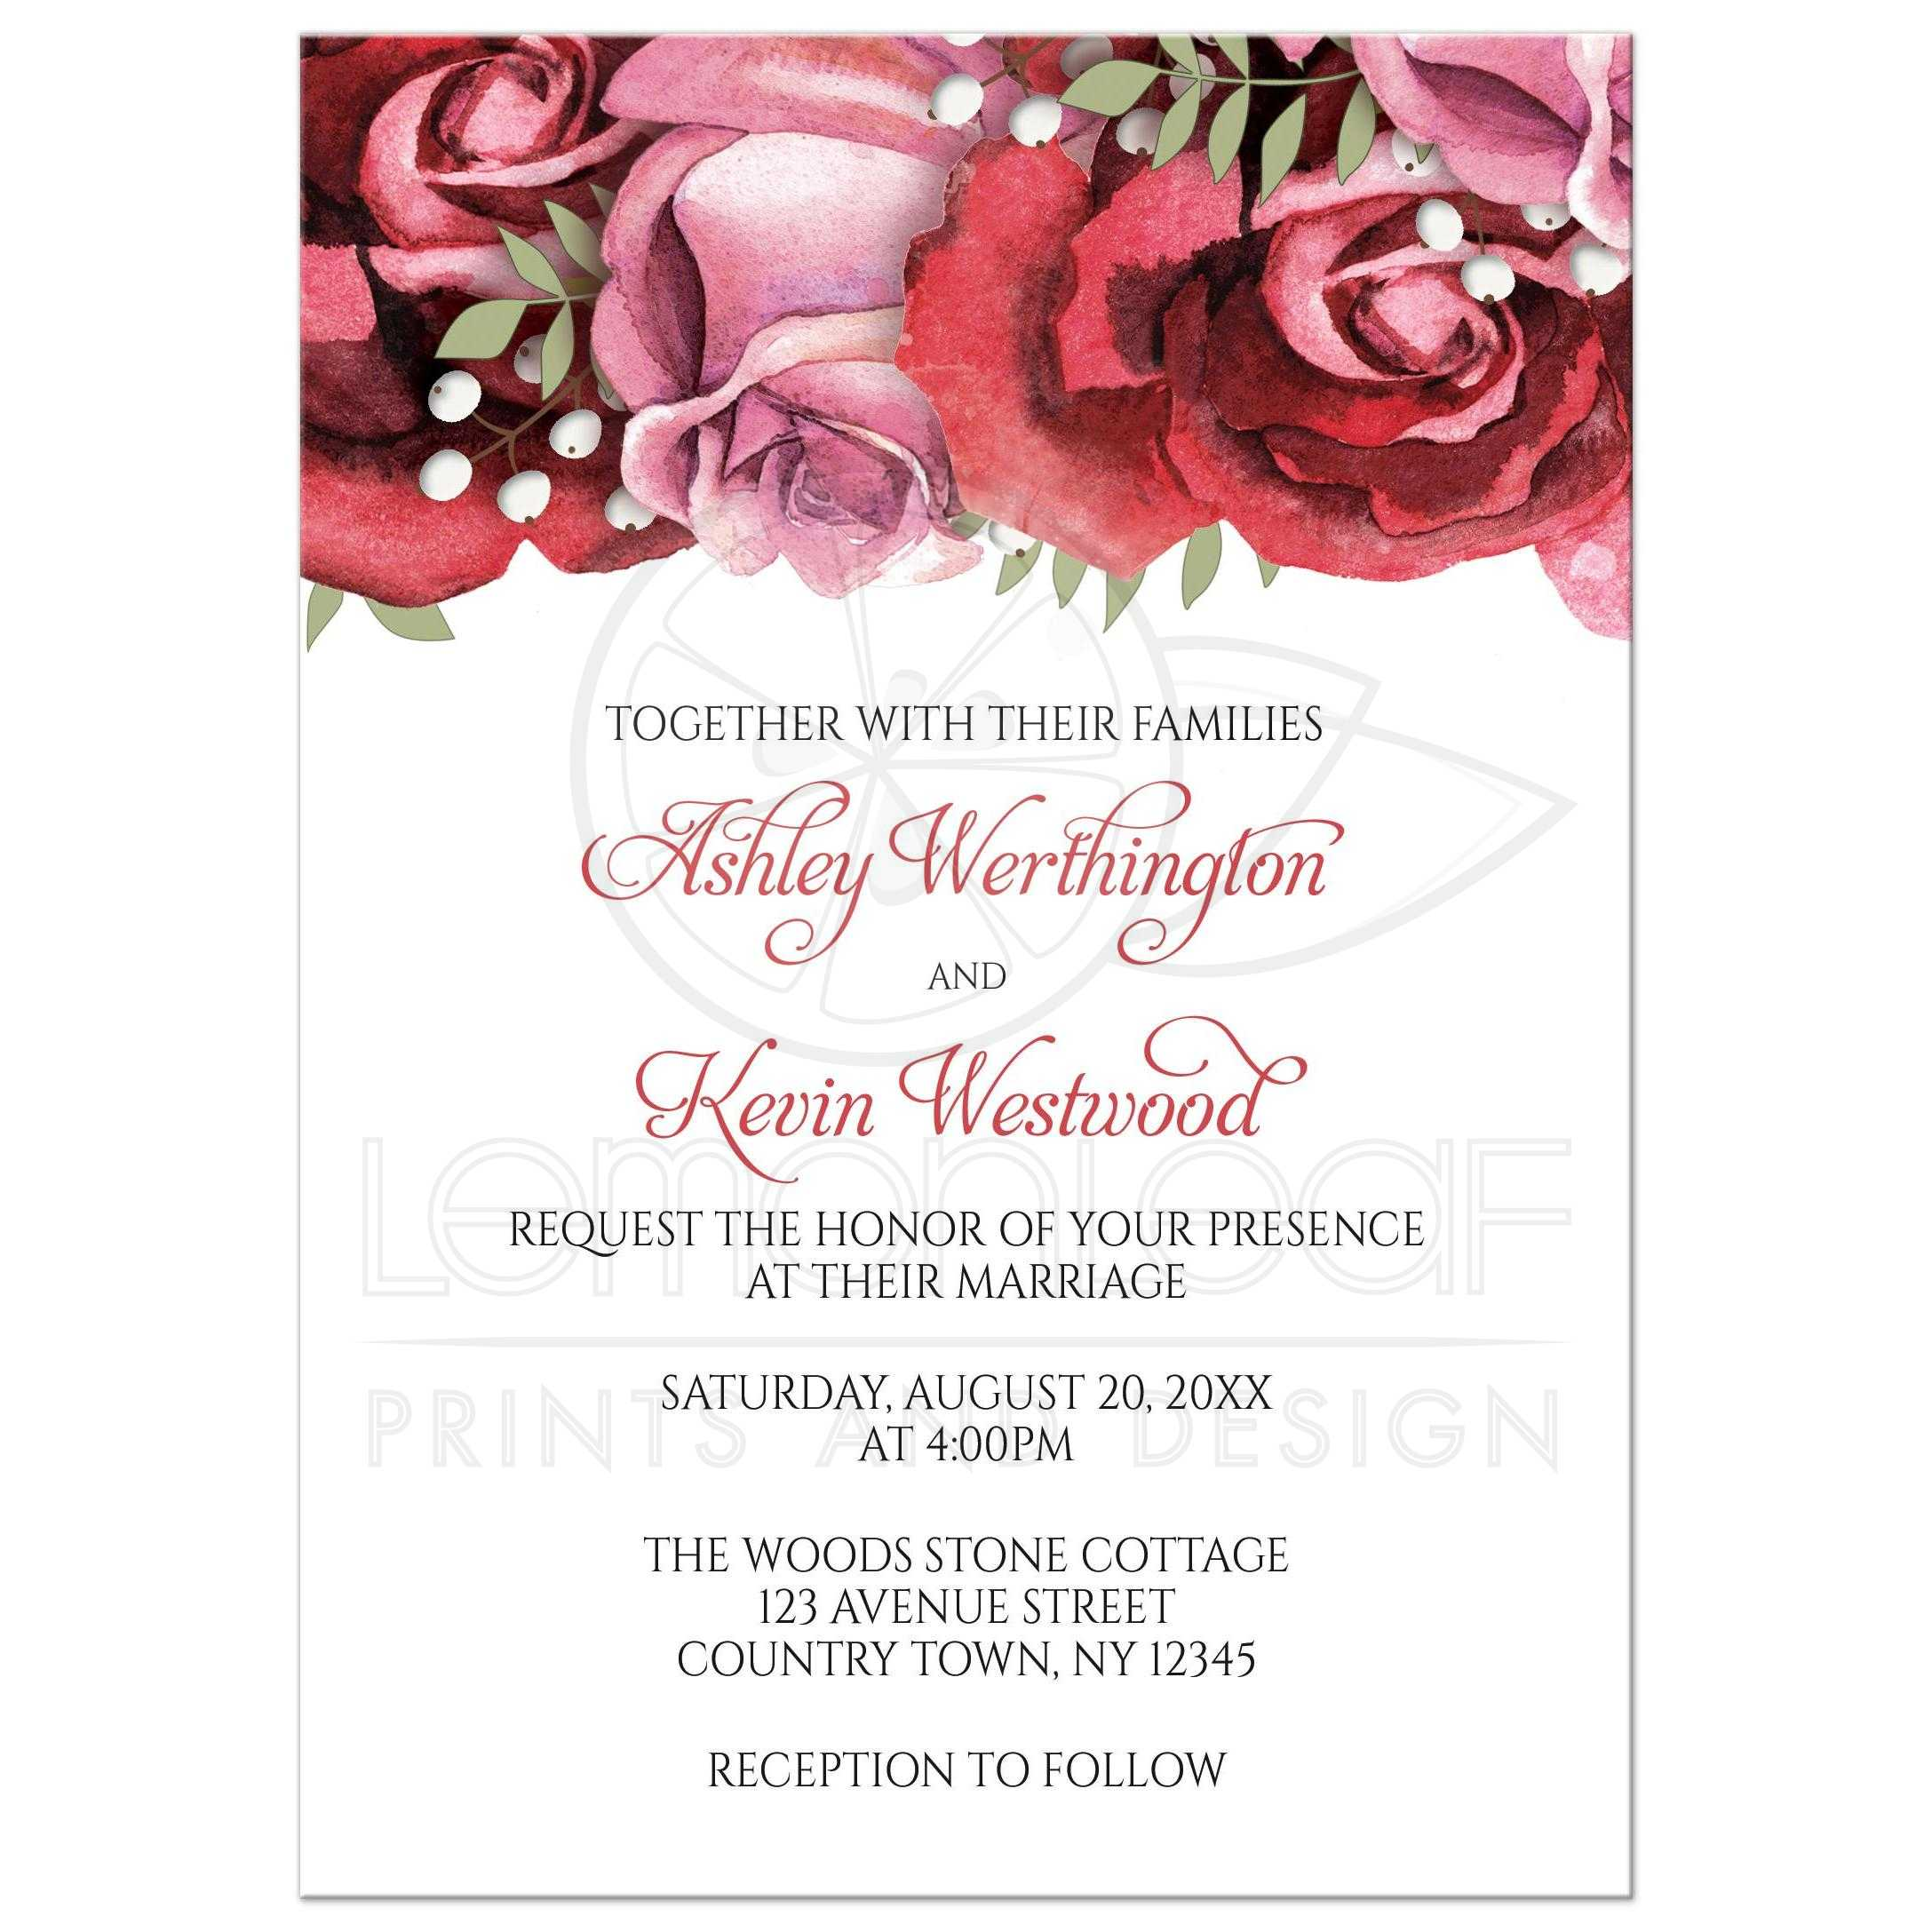 Wedding Invitations   Burgundy Red Pink Rose Great Ideas